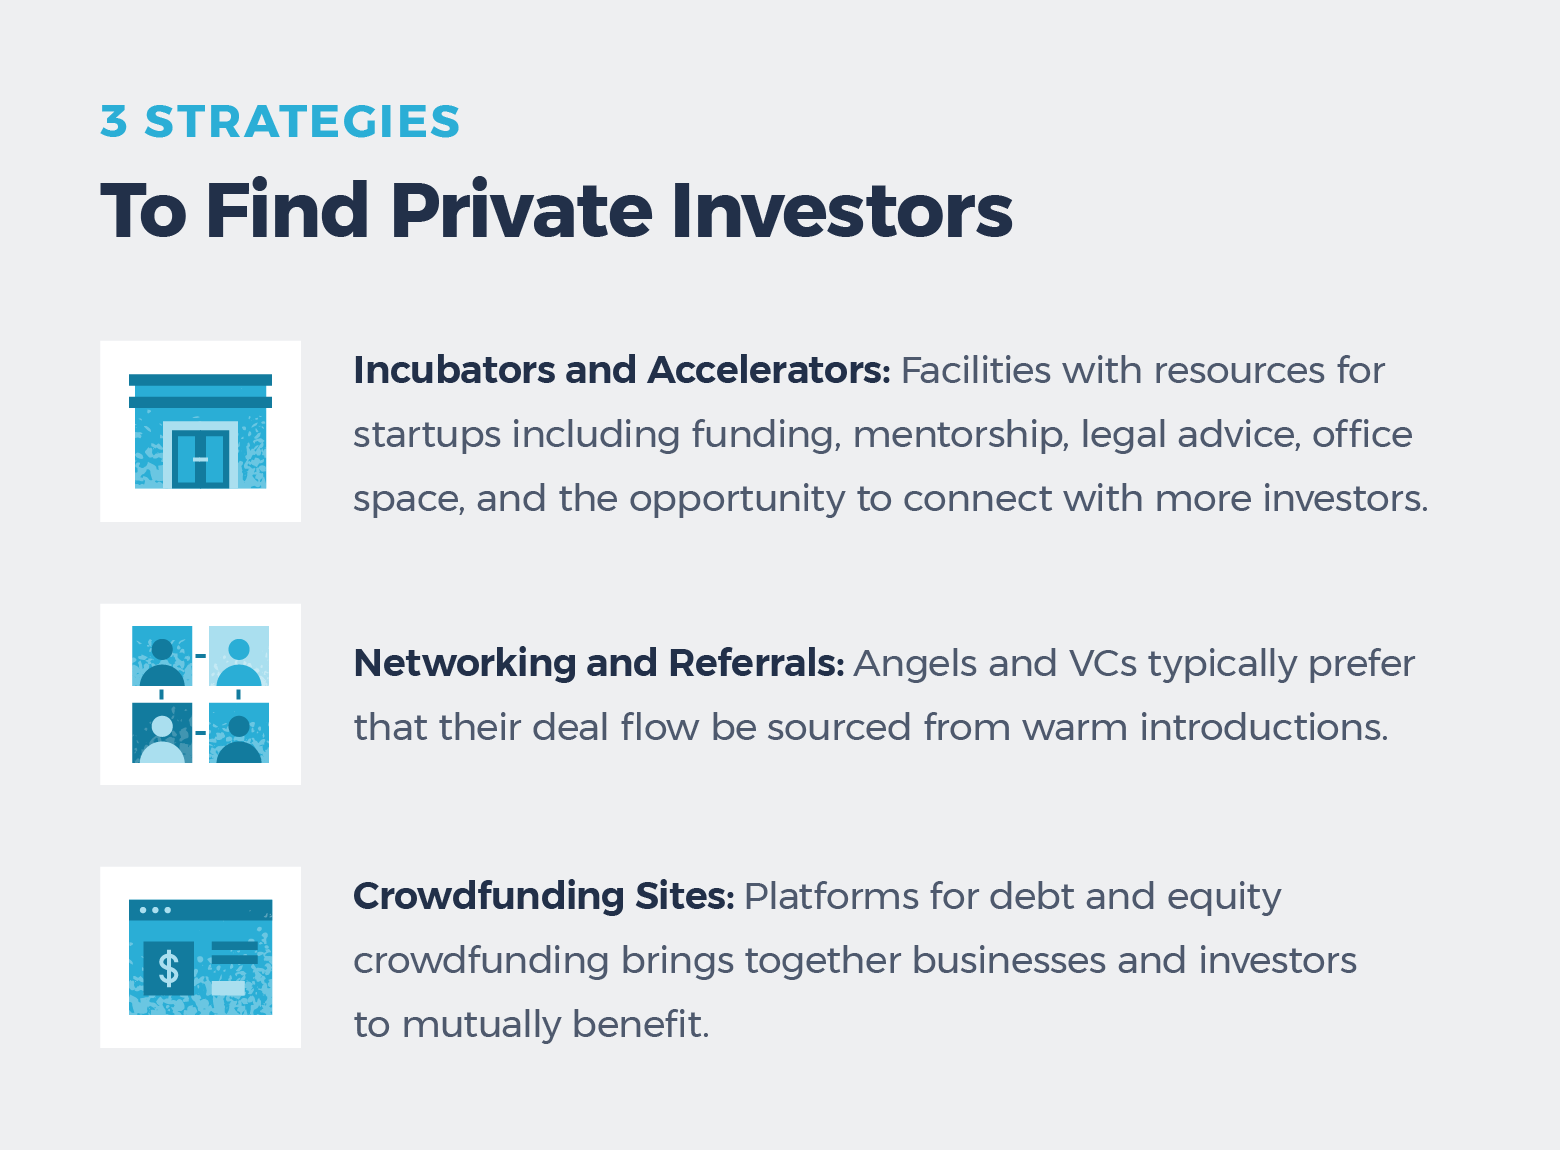 strategies for finding private investors